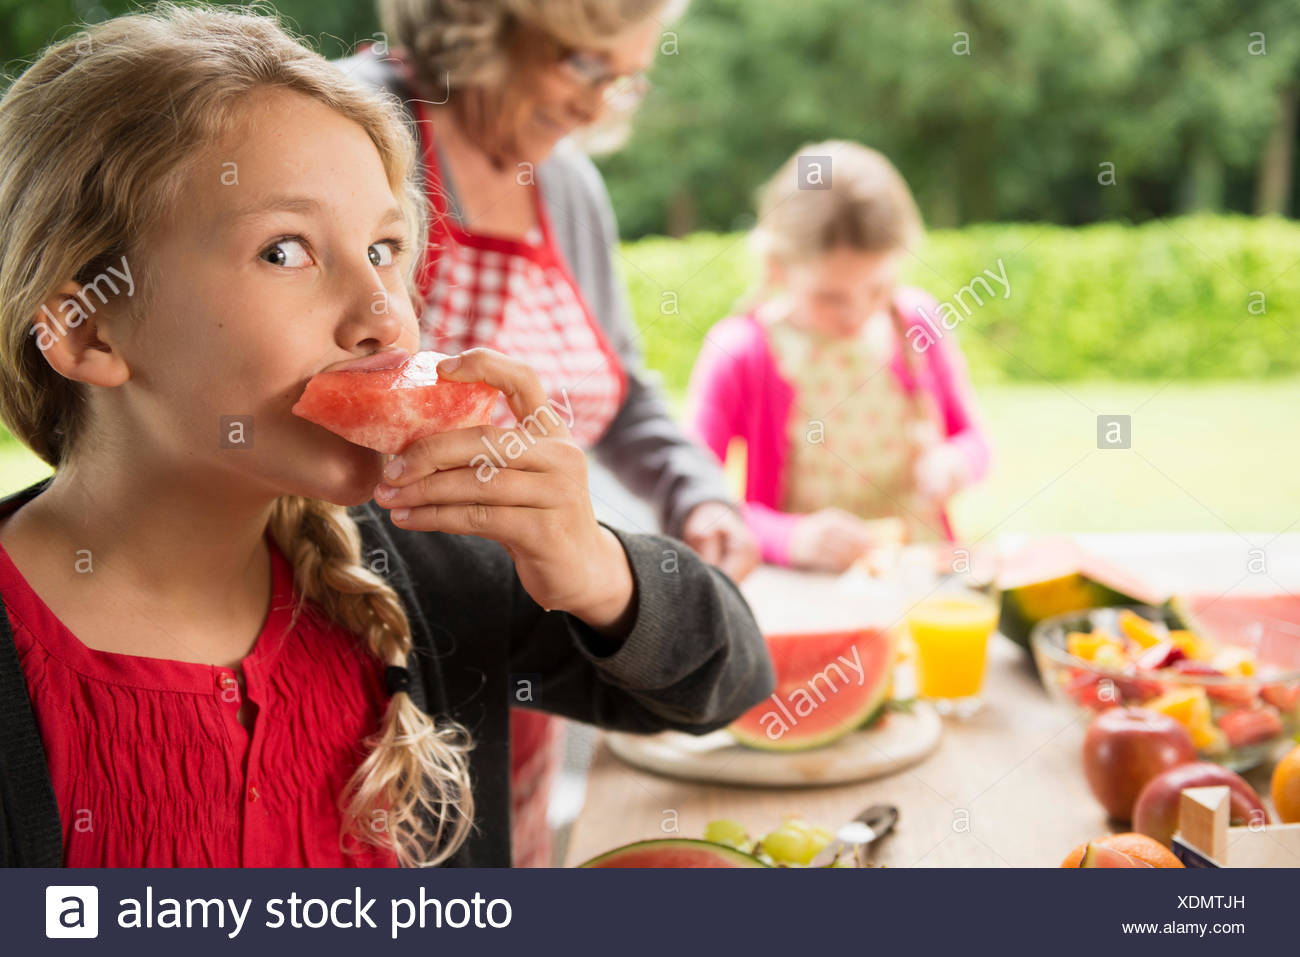 Mischievous girl at patio table eating watermelon slice - Stock Image